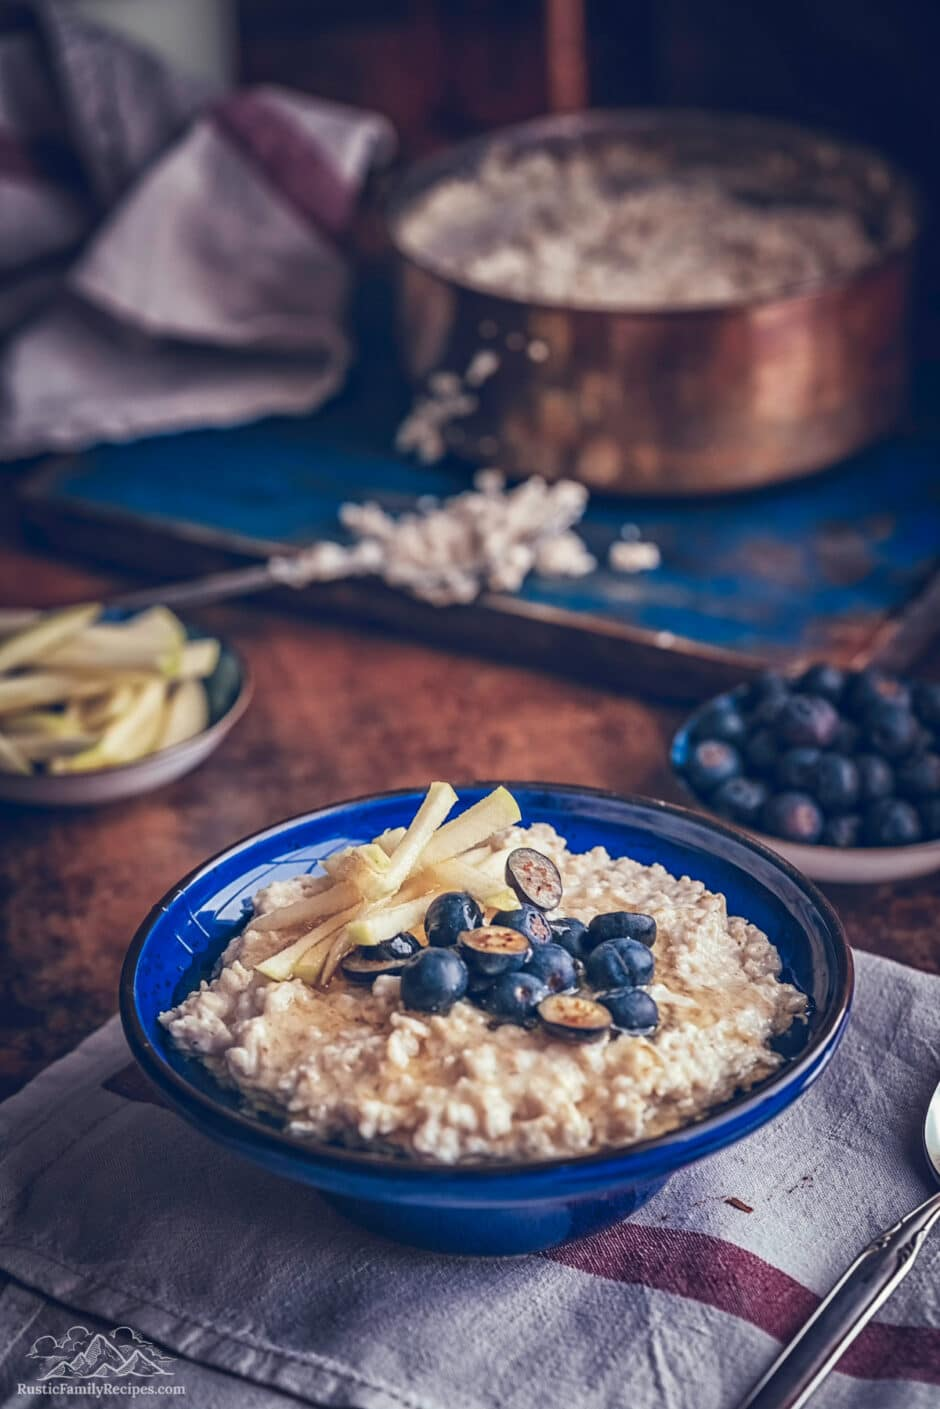 Bowl of oatmeal with blueberries.